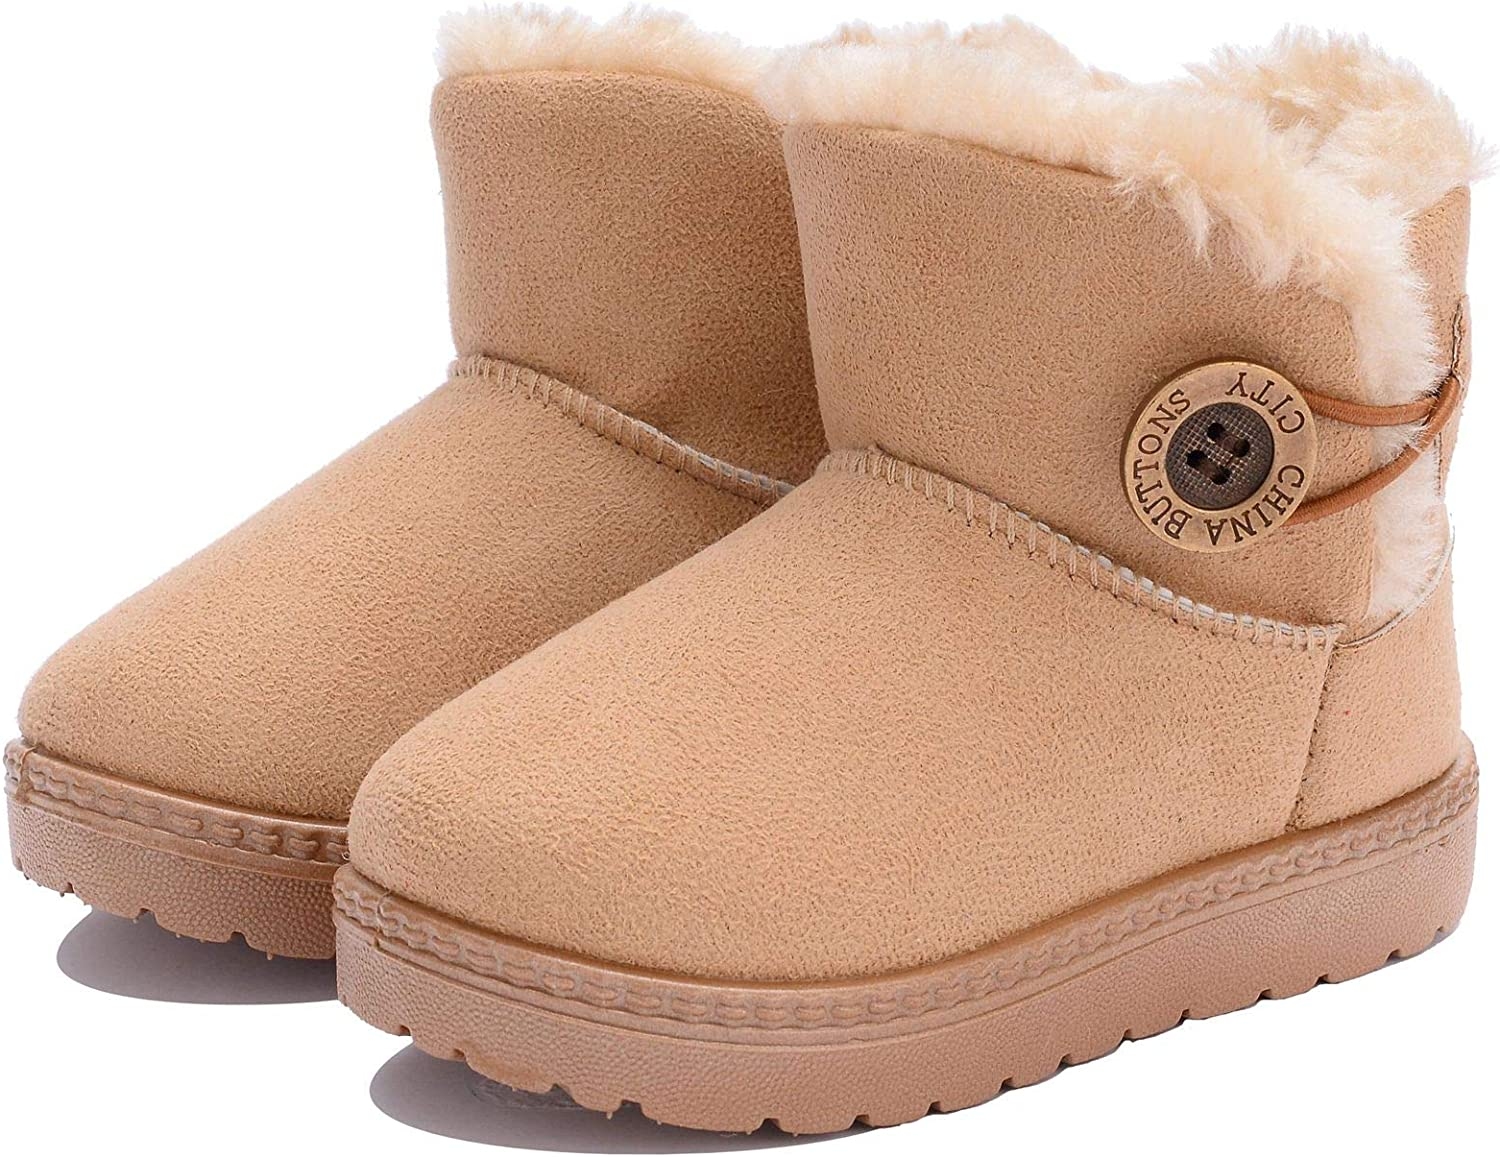 cute winter boots for girls